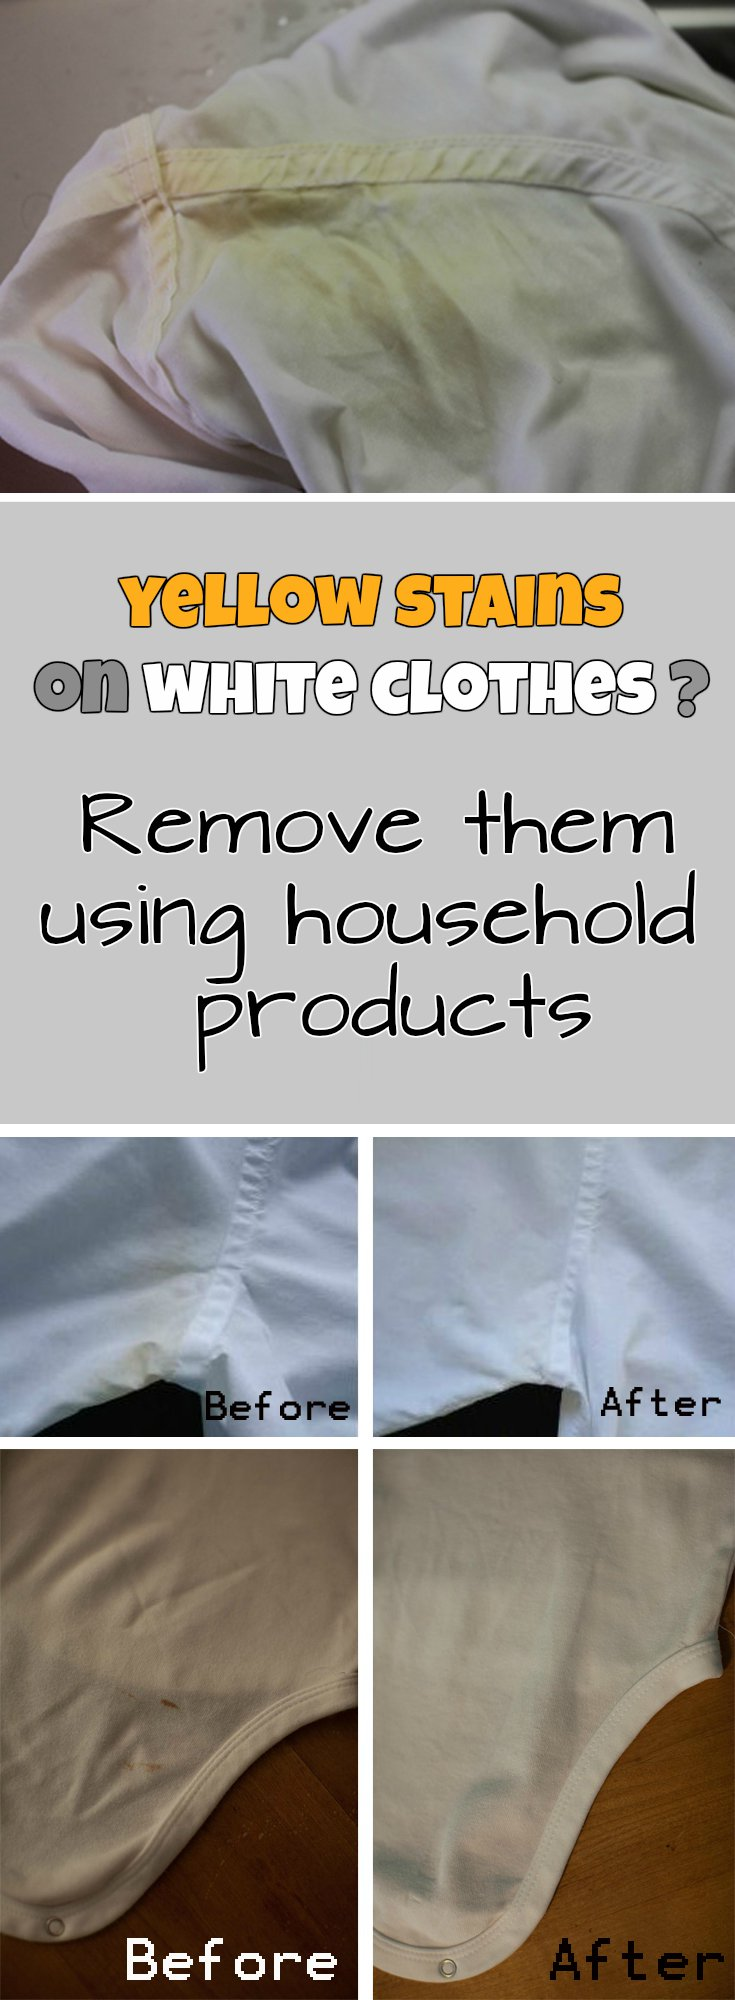 How To Use Bleach To Remove Stains On White Clothes